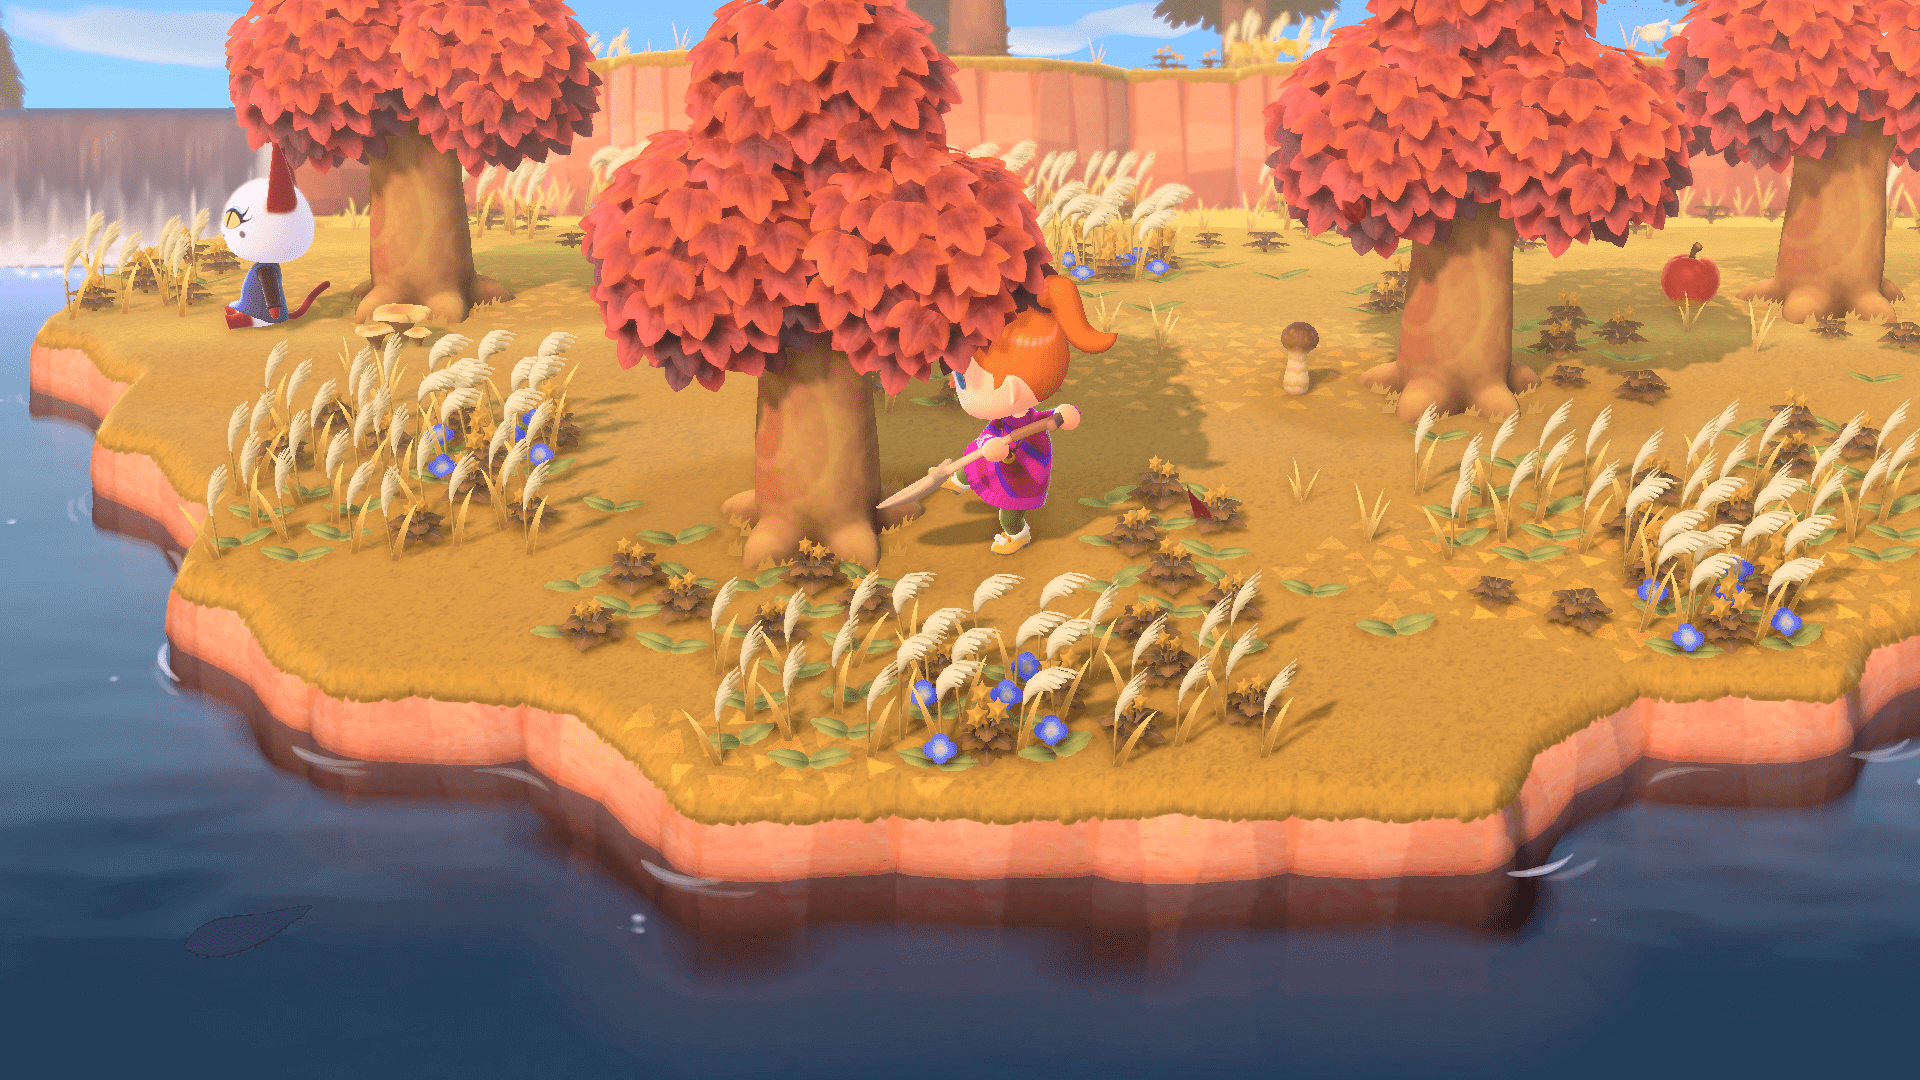 En train de déraciner un arbre, Animal Crossing : New Horizons